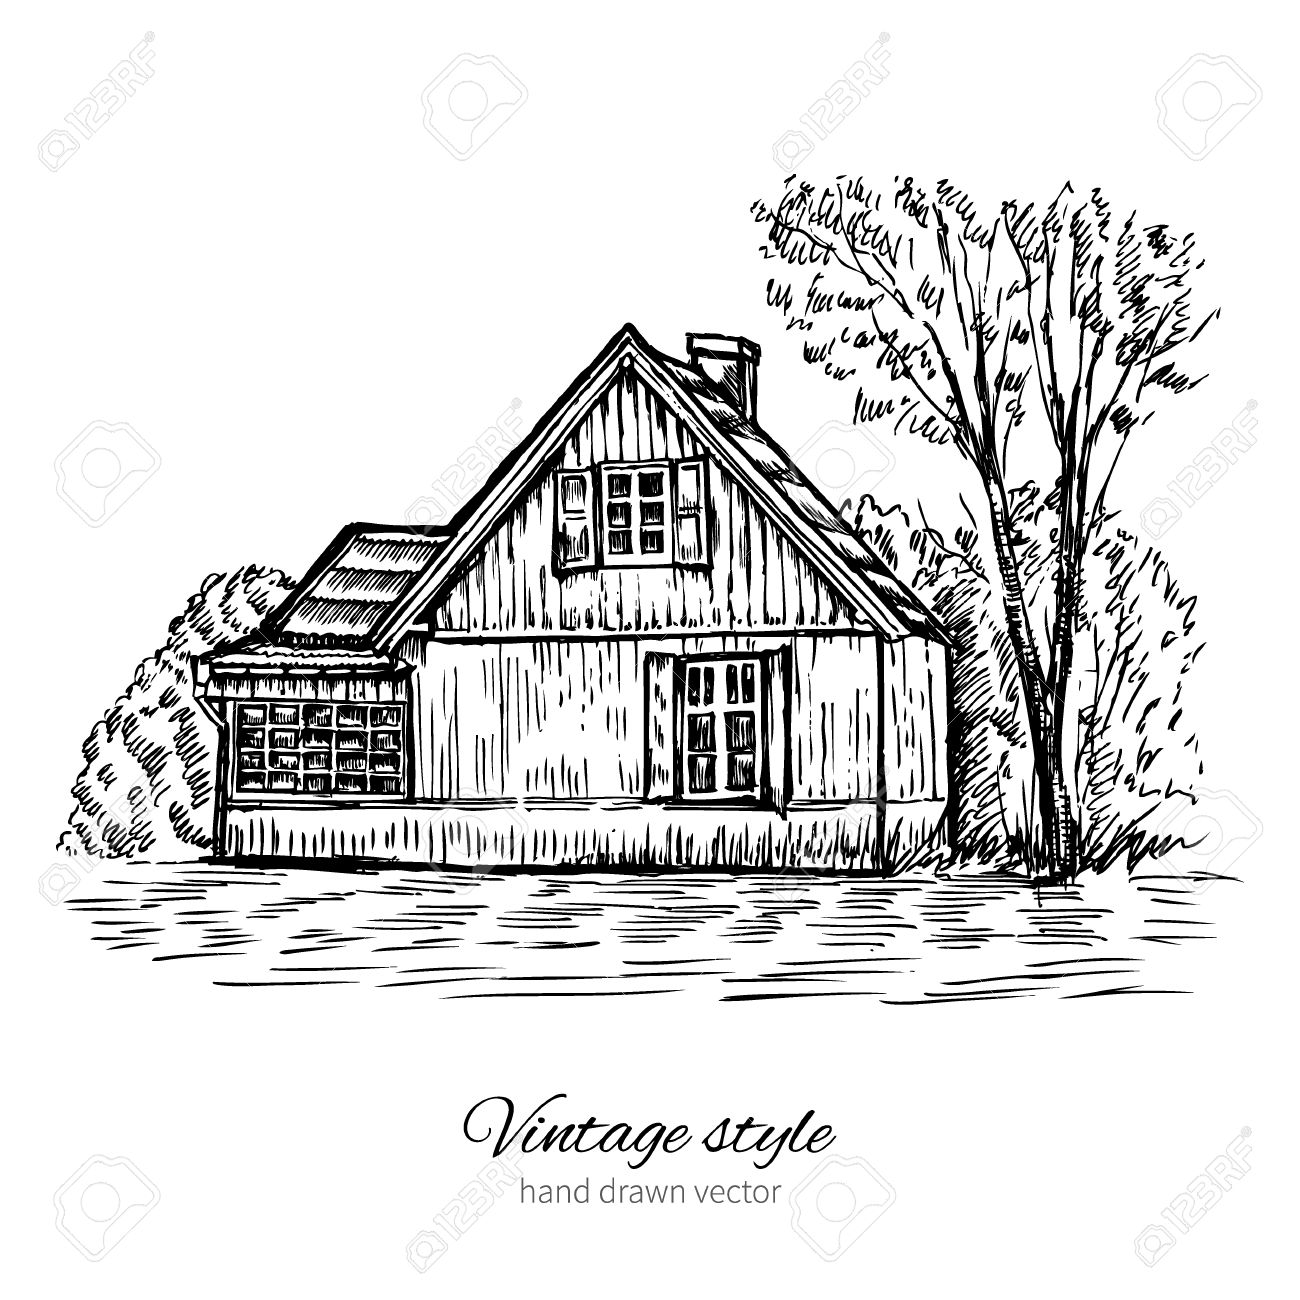 Vintage Vector Sketch Old European Wooden House Isolated On White Historical Building Sketchy Line Art